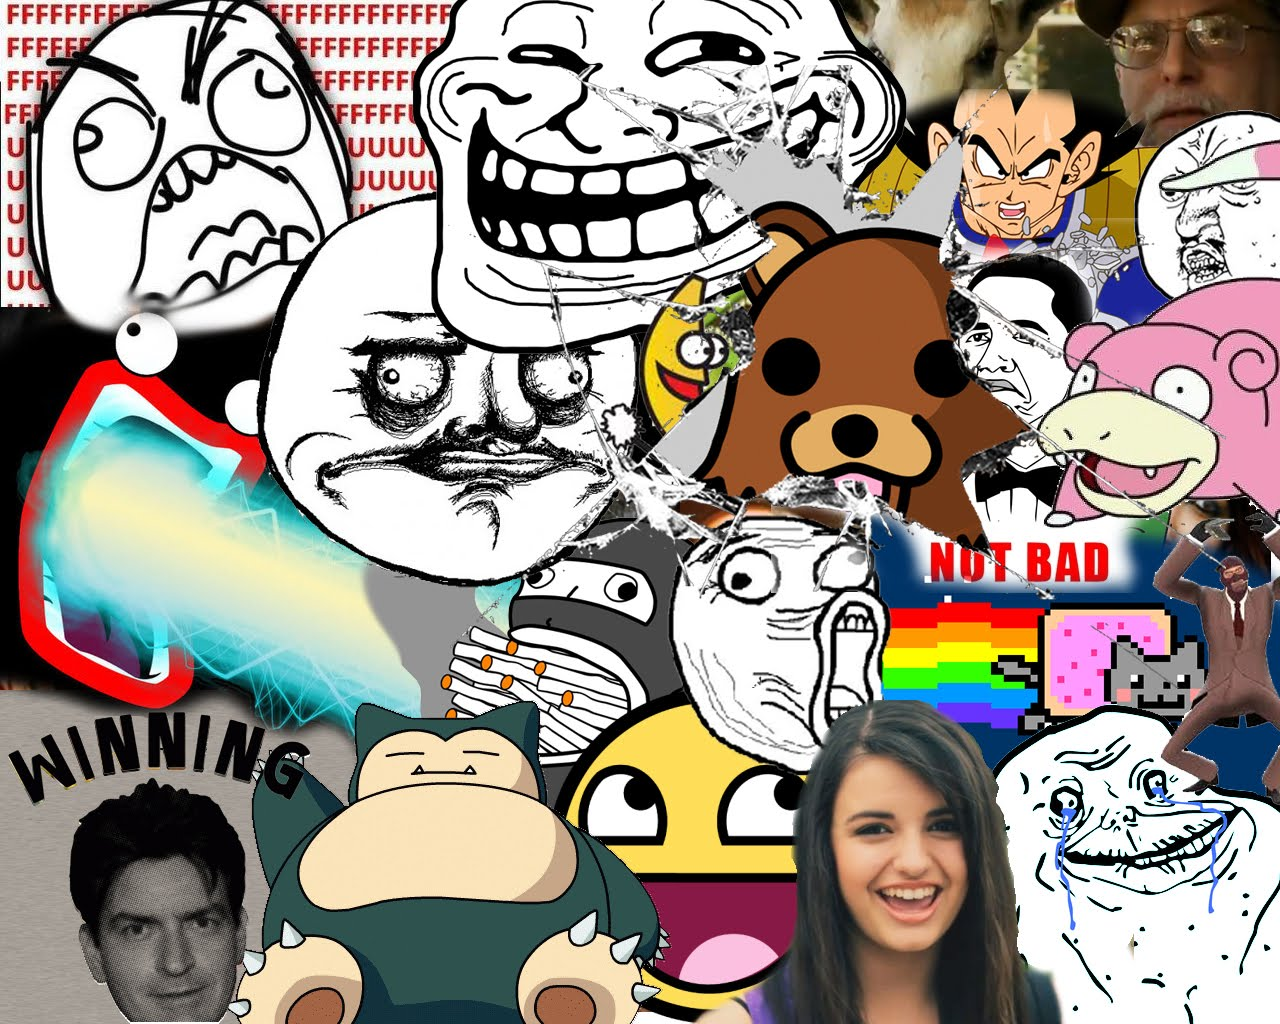 meme collage | Meme Generator